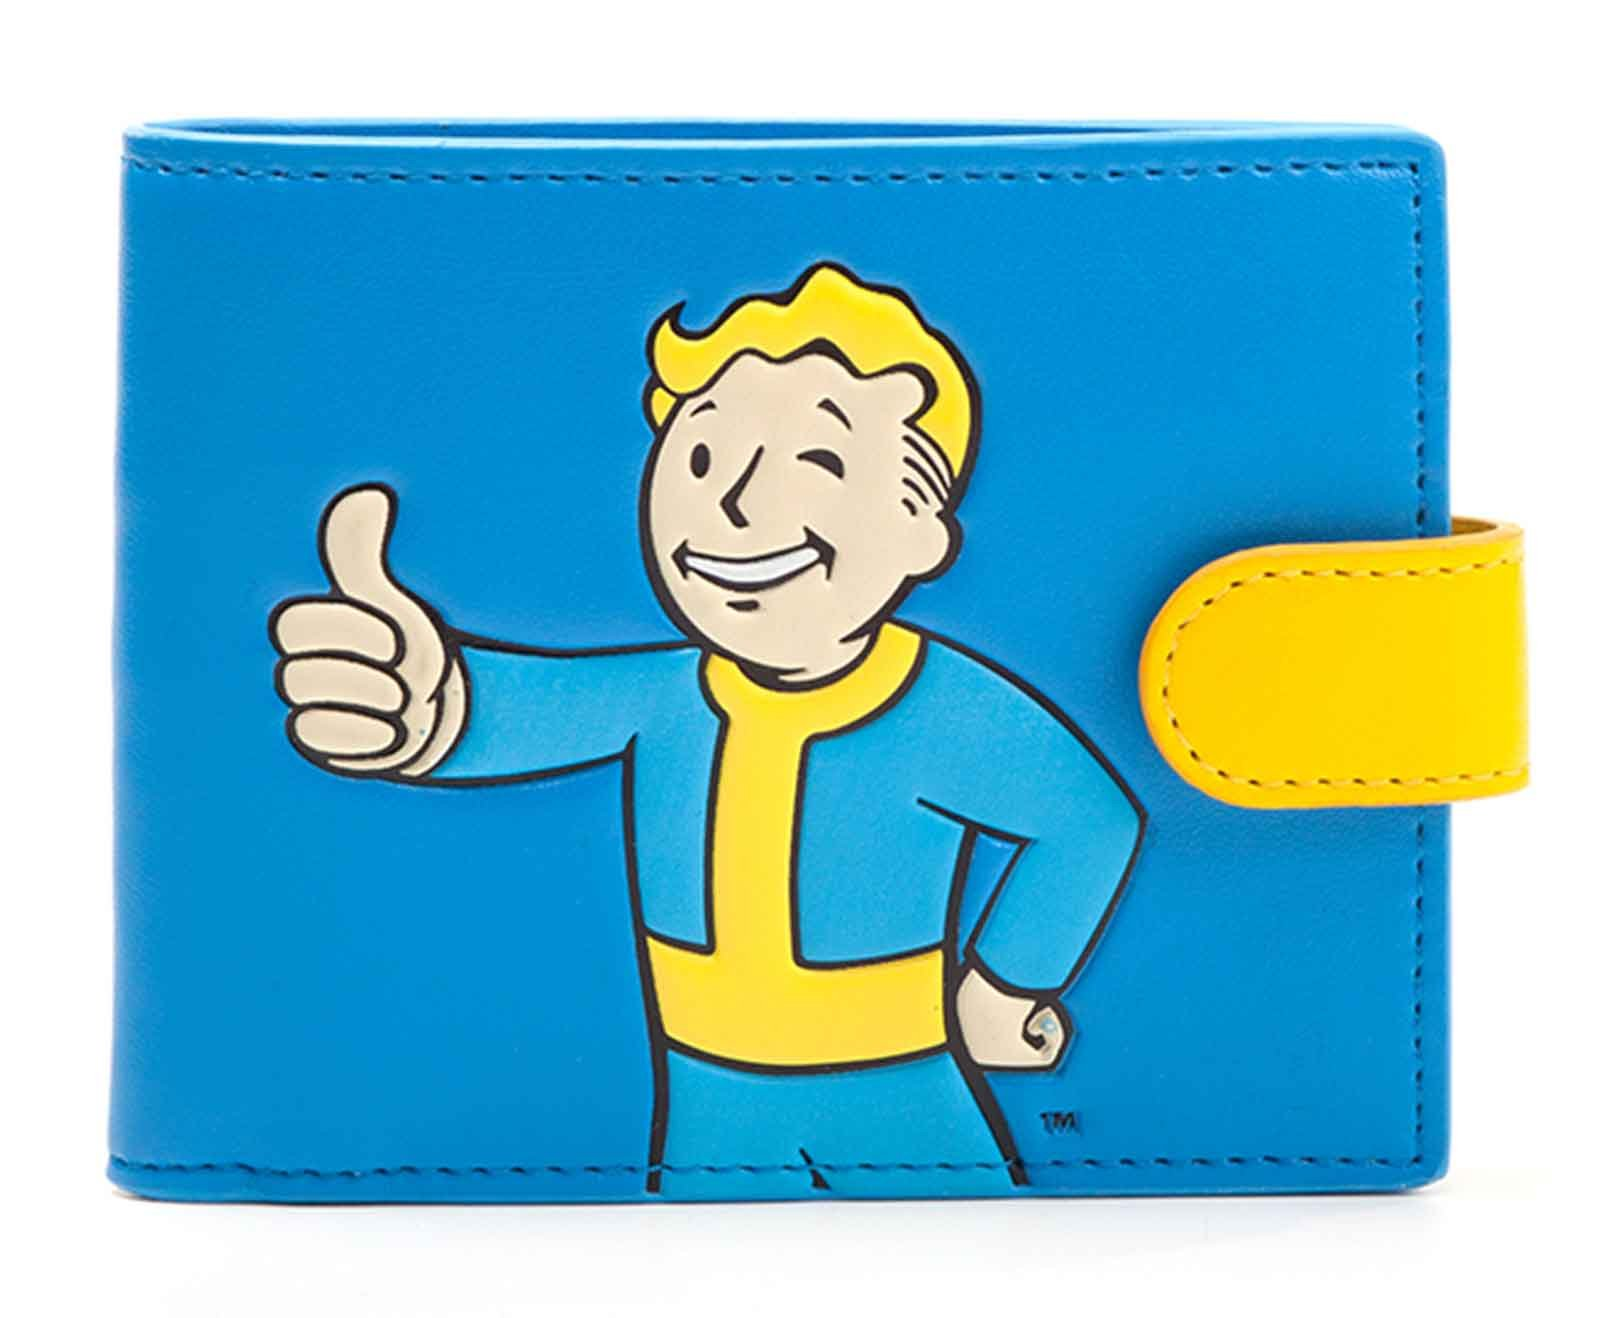 Fallout 4 Wallet Vault Boy Approves Official Xbox Ps1 Gamer Blue Bifold